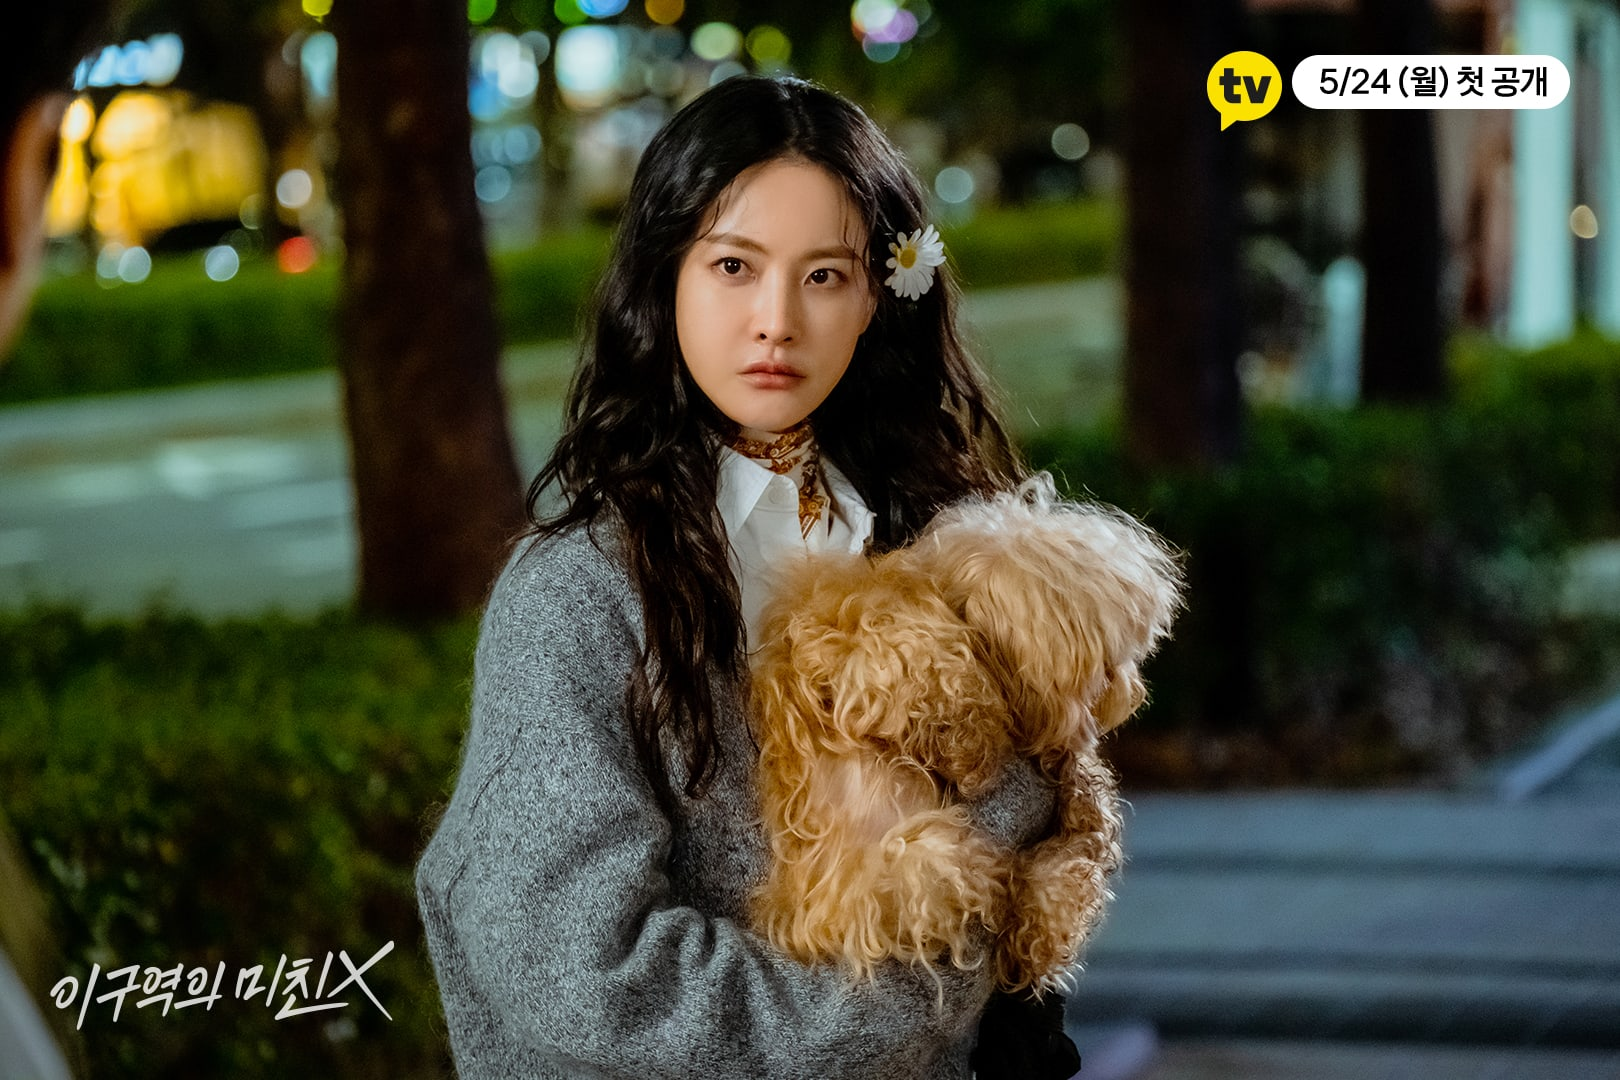 Upcoming Drama 2021] The Crazy Guy in This District, 이 구역의 미친 X - Mon, Tue@ Wed, at 7 PM KST-Jung Woo & Oh Yeon Seo- Premieres on May 24 - k-dramas